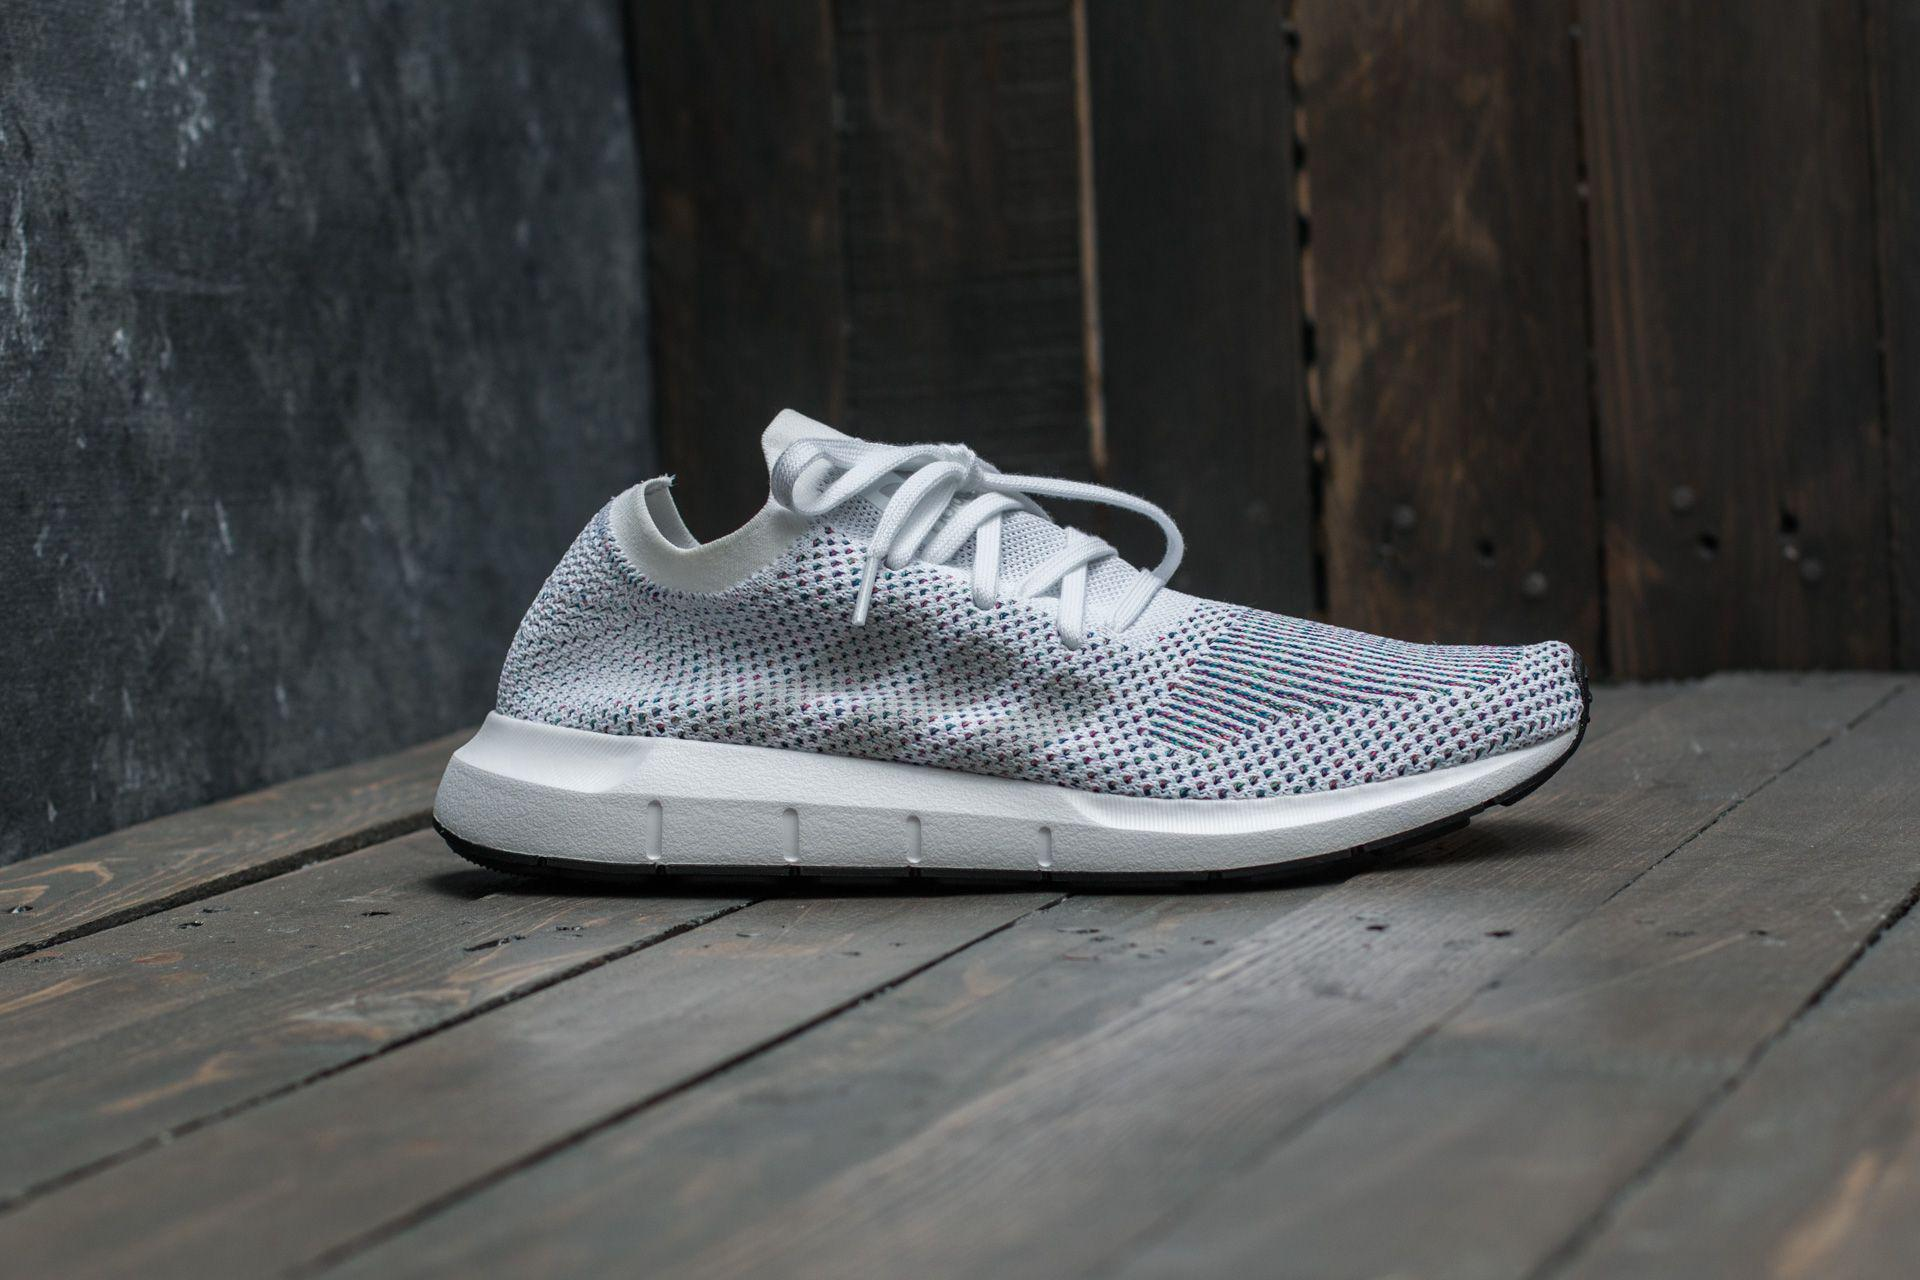 Lyst - adidas Originals Adidas Swift Run Primeknit Ftw White  Grey ... c3eadb8dec